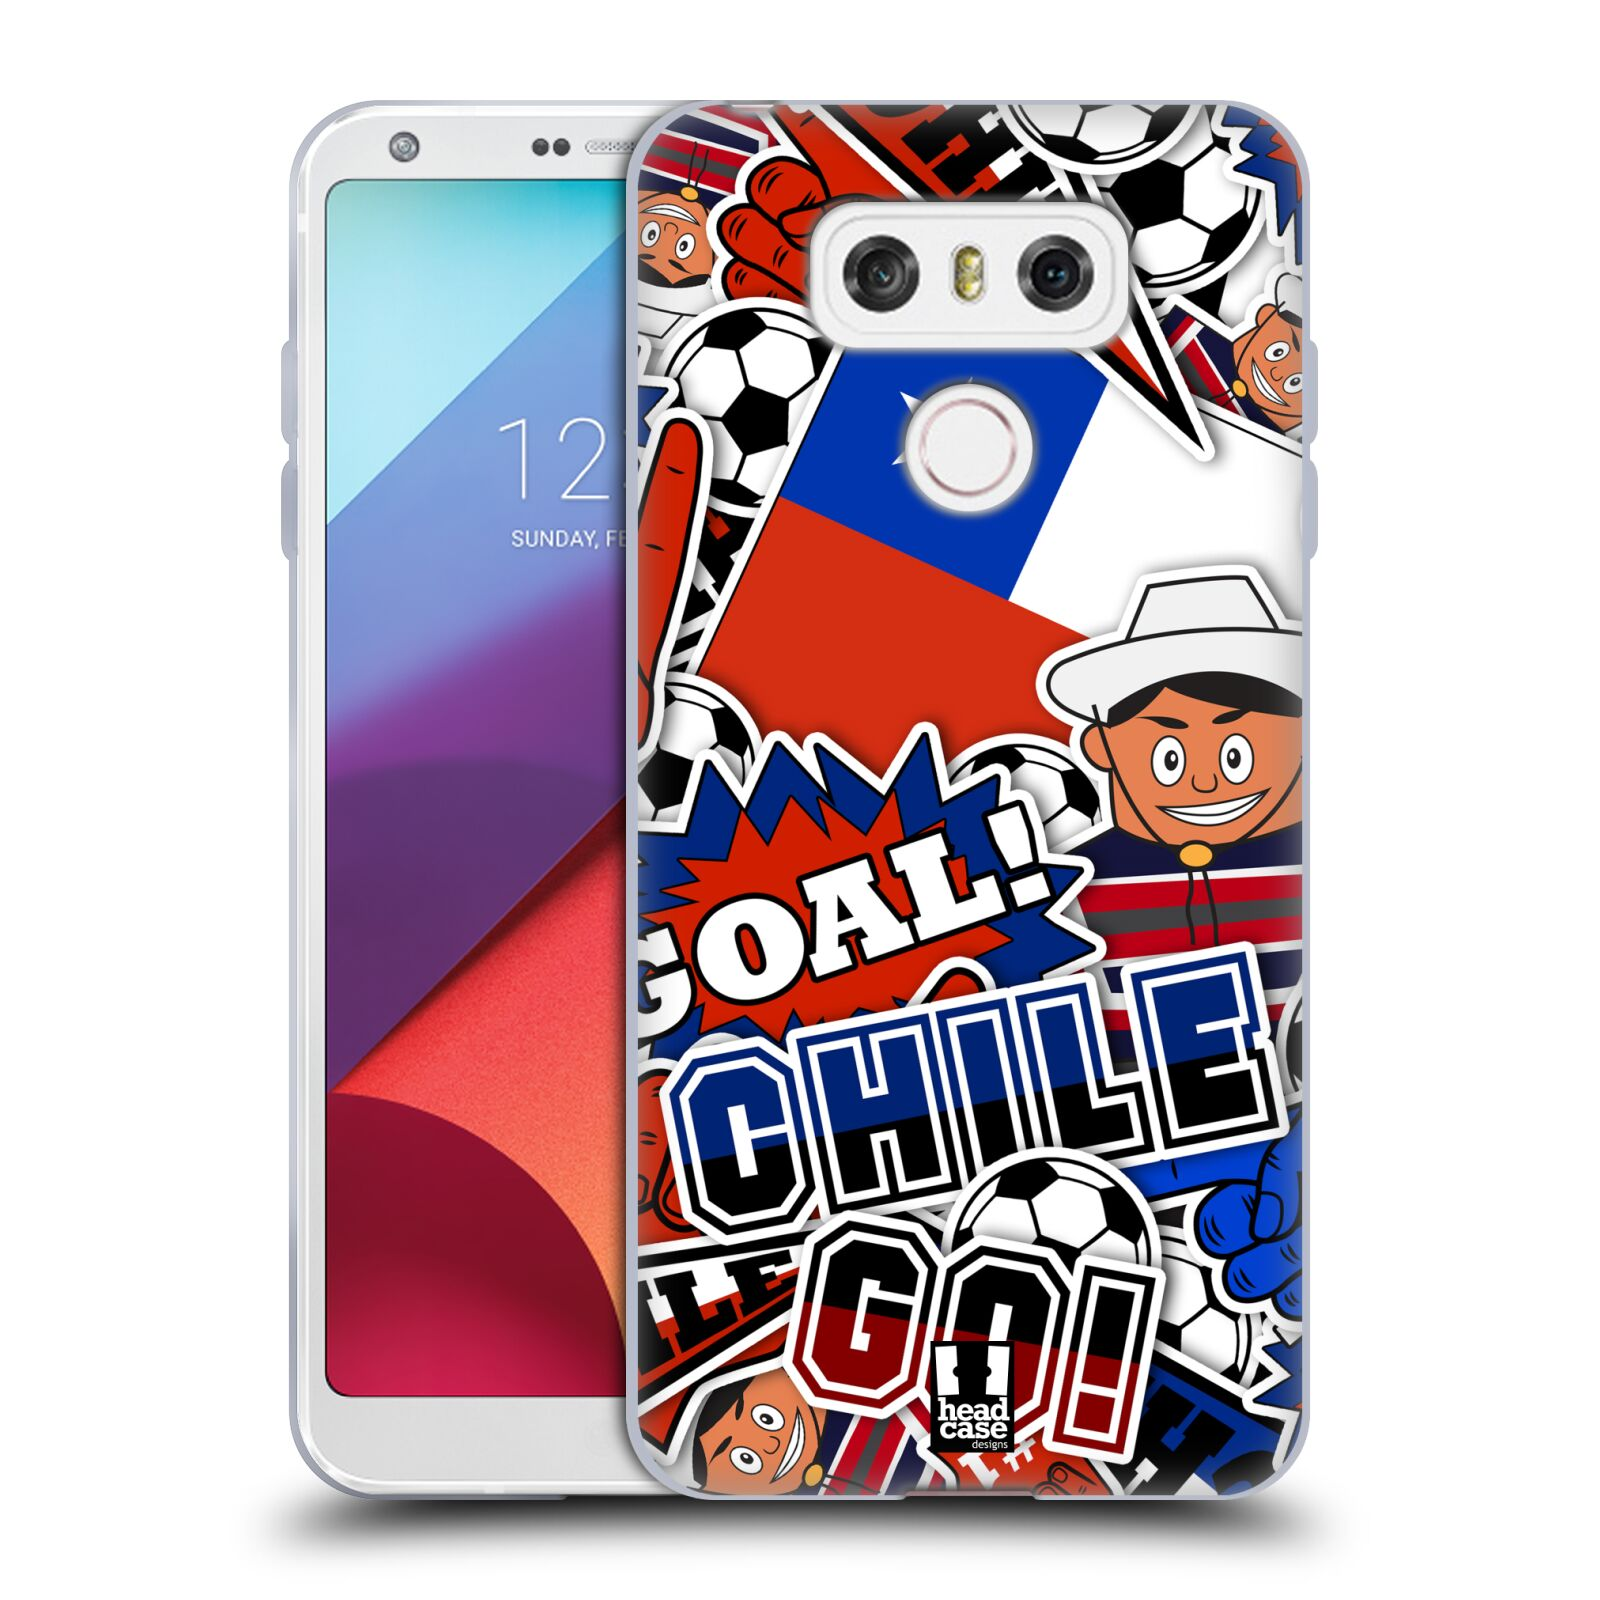 HEAD-CASE-DESIGNS-FOOTBALL-COUNTRY-ICONS-SOFT-GEL-CASE-FOR-LG-G6